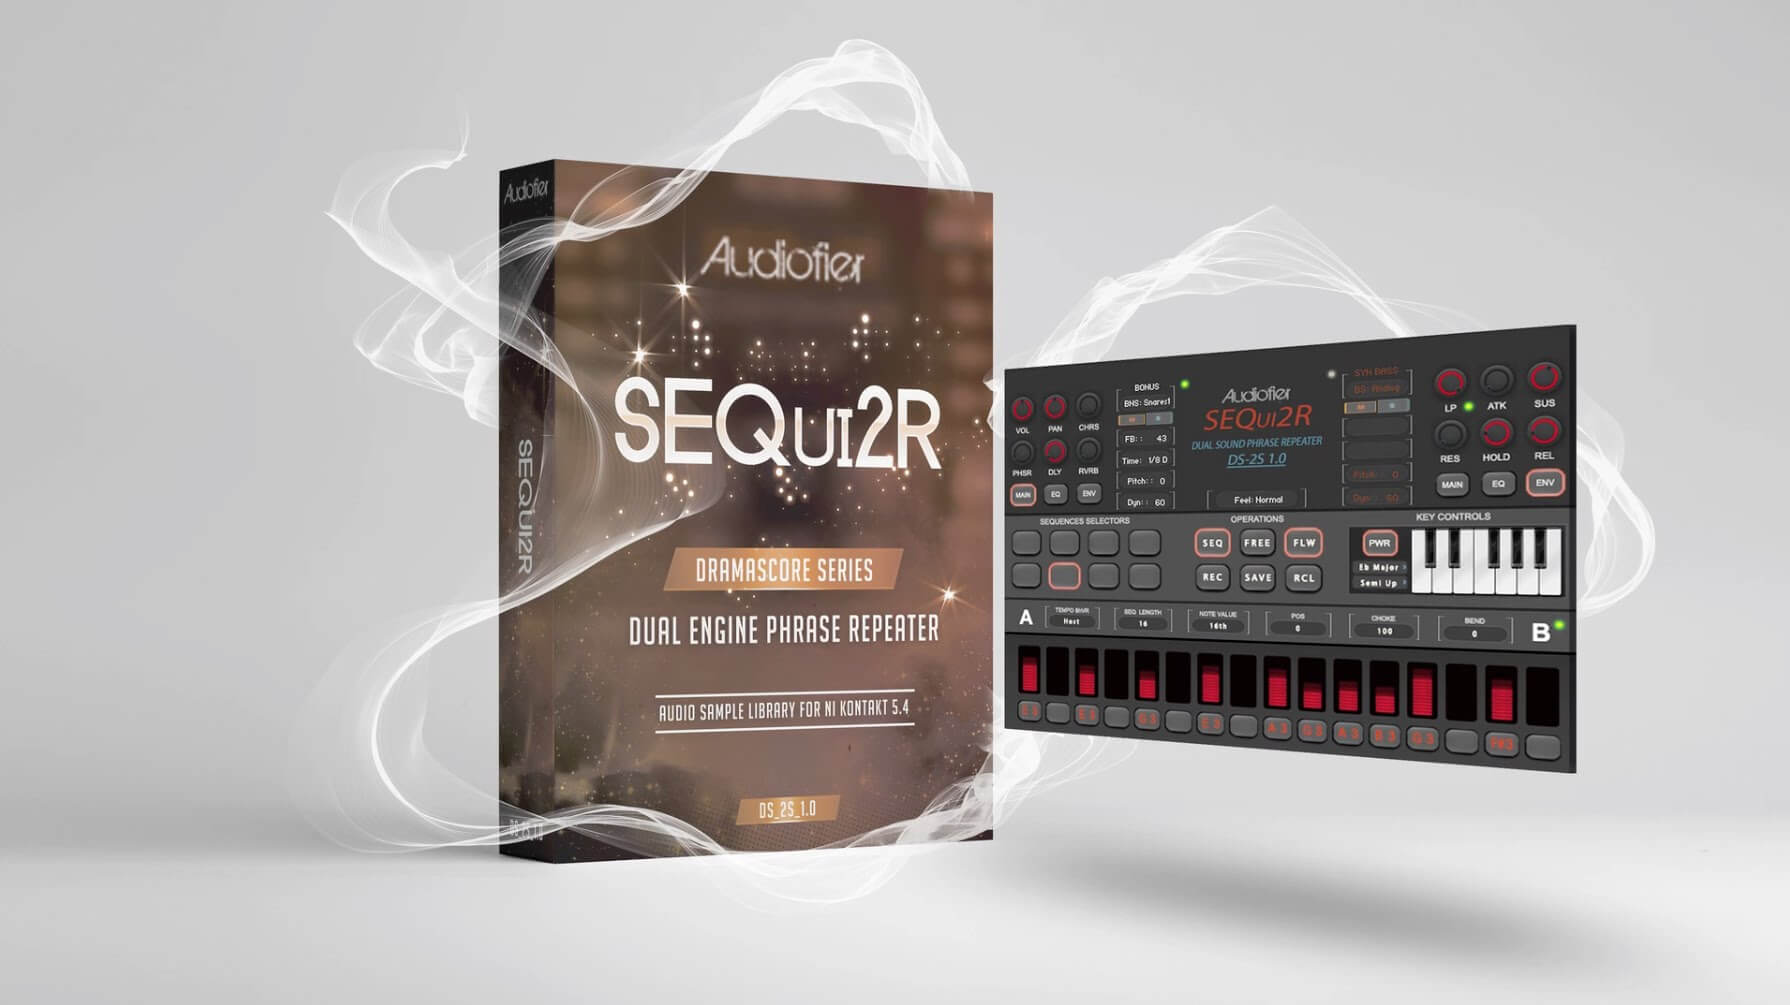 Video related to Sequi2r EX